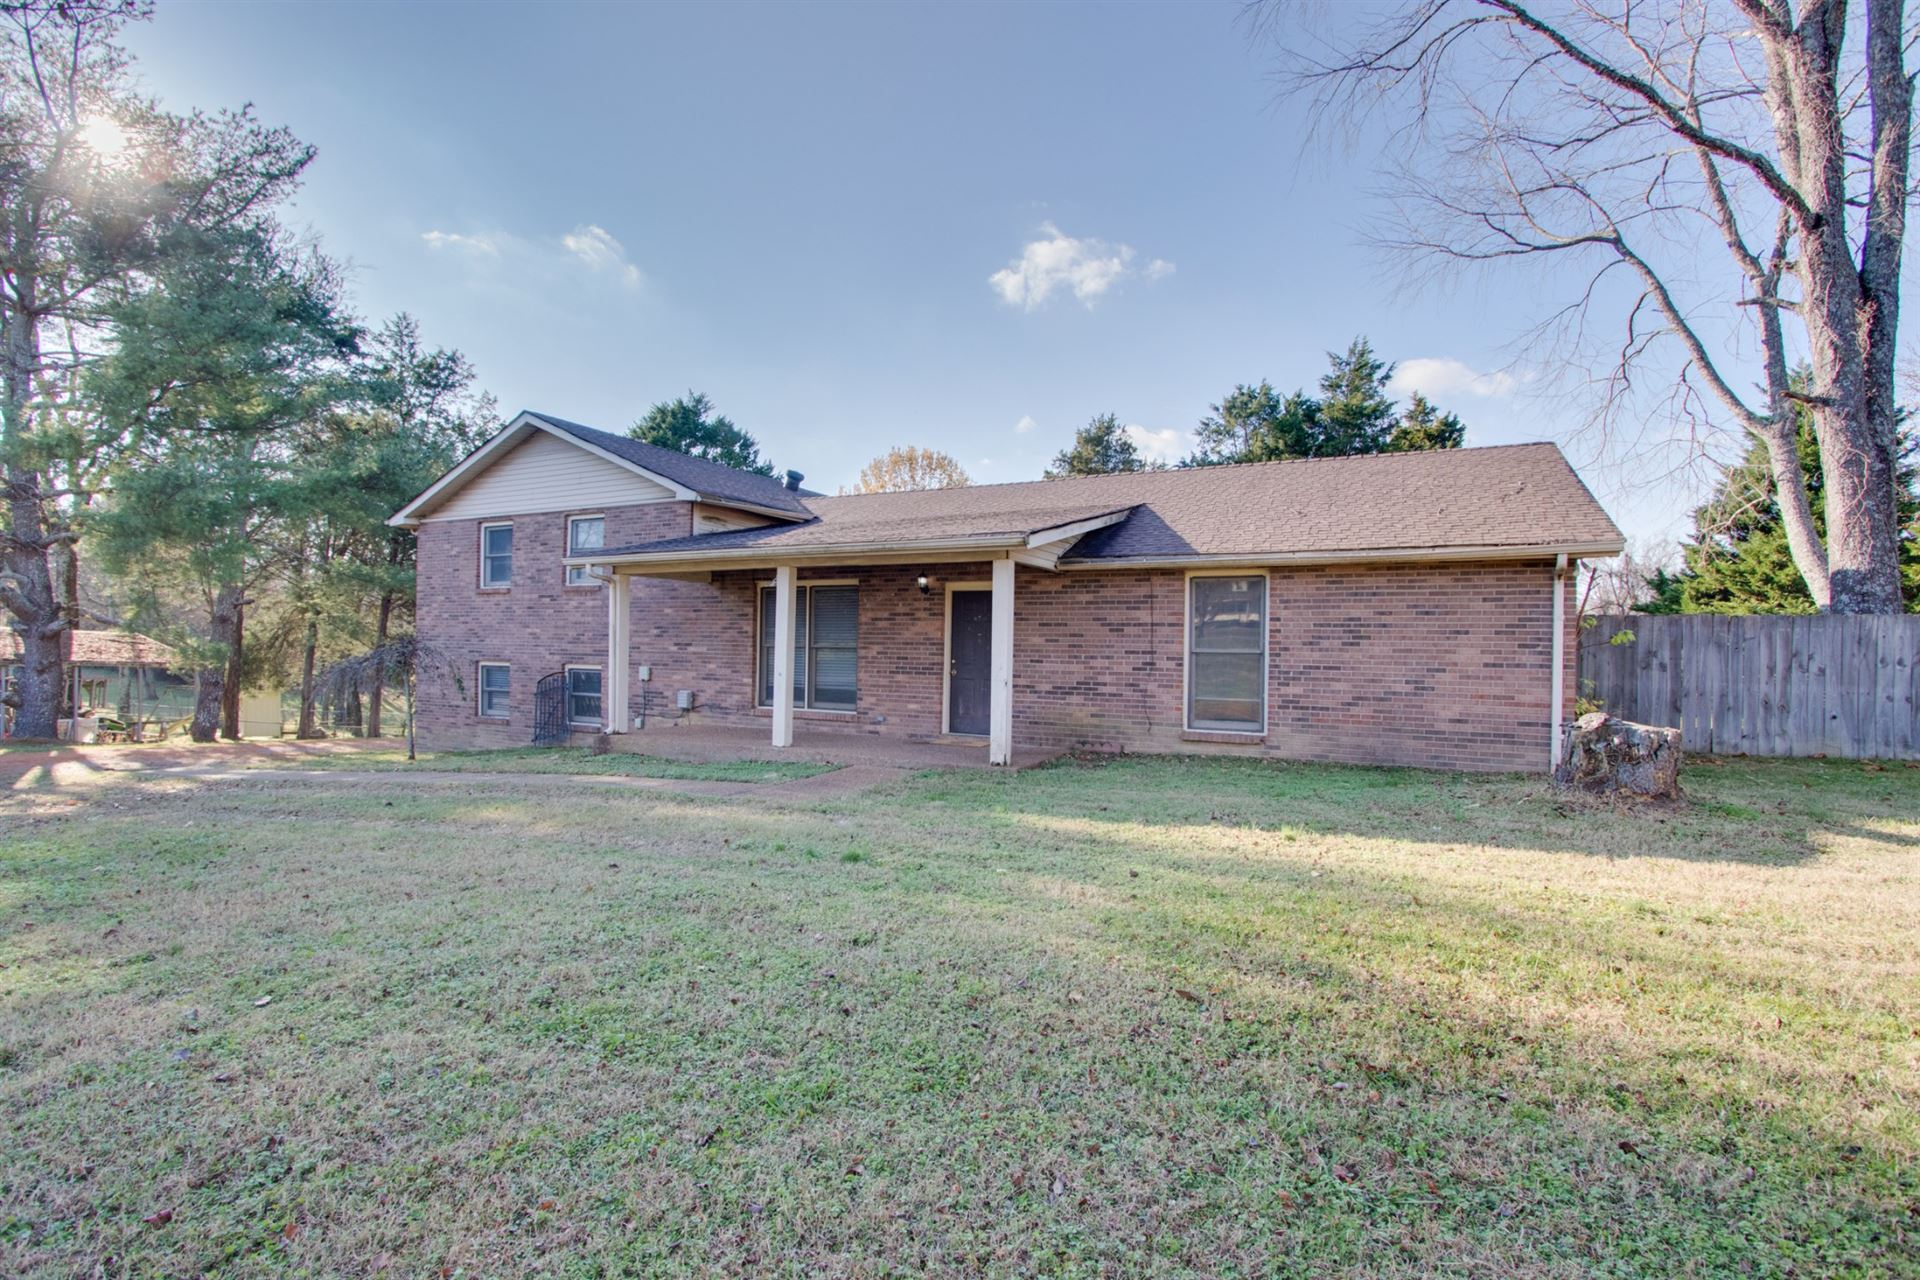 1969 N Greenhill Rd, Mount Juliet, TN 37122 - MLS#: 2211220